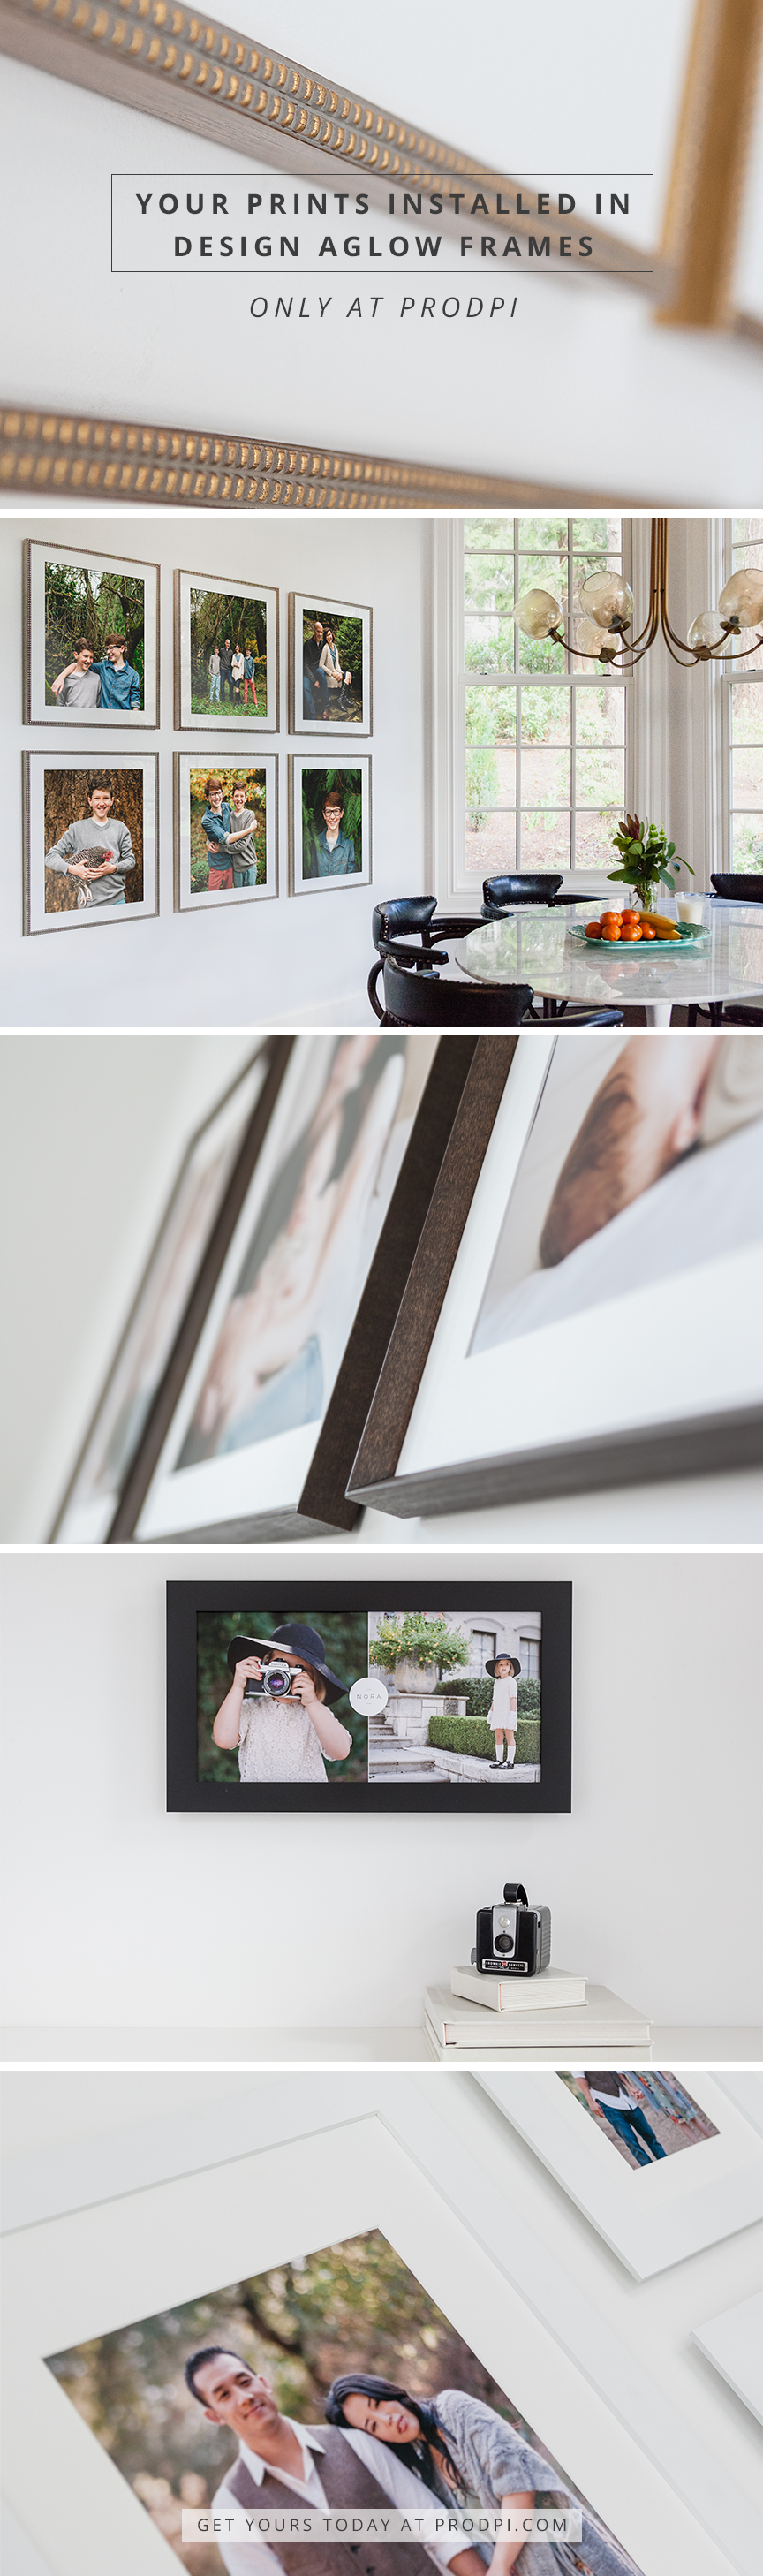 Your prints installed in Design Aglow frames, delivered straight to ...